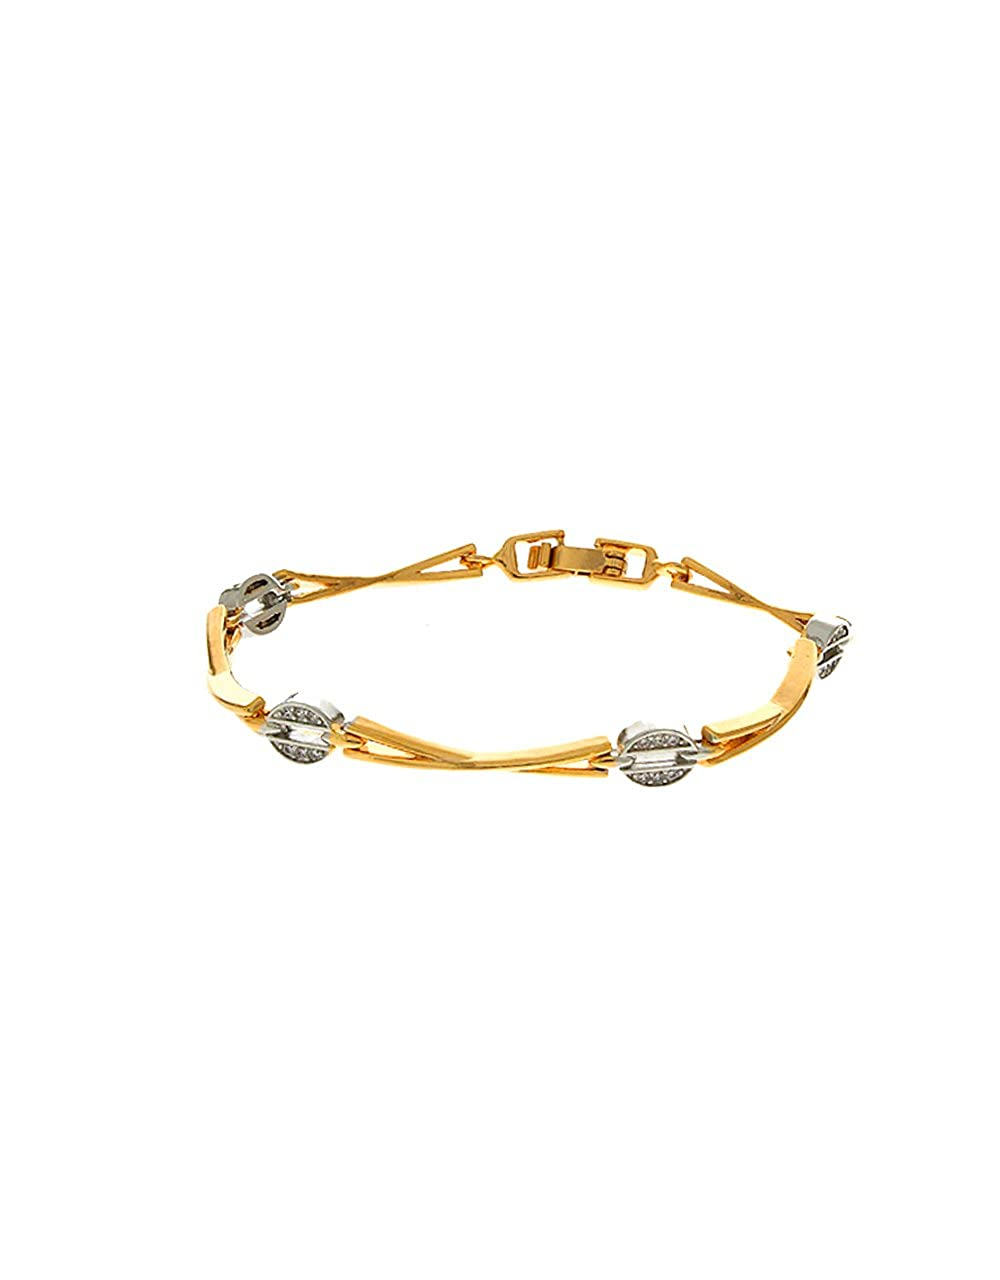 Anuradha Art Silver Finish Party Wear Leather Hand Bracelets for Women//Men